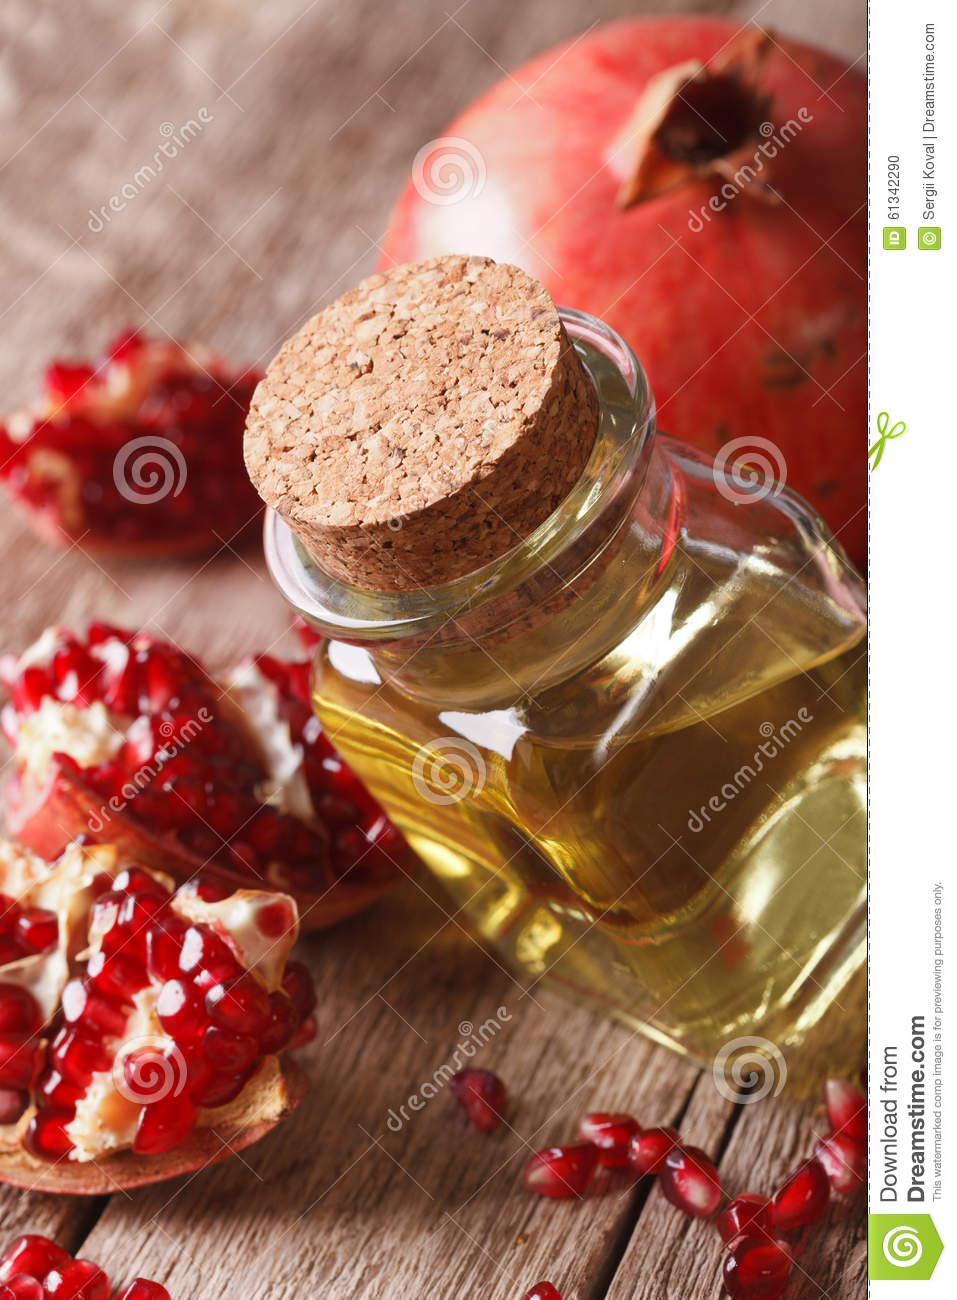 how to make pomegranate seed oil at home